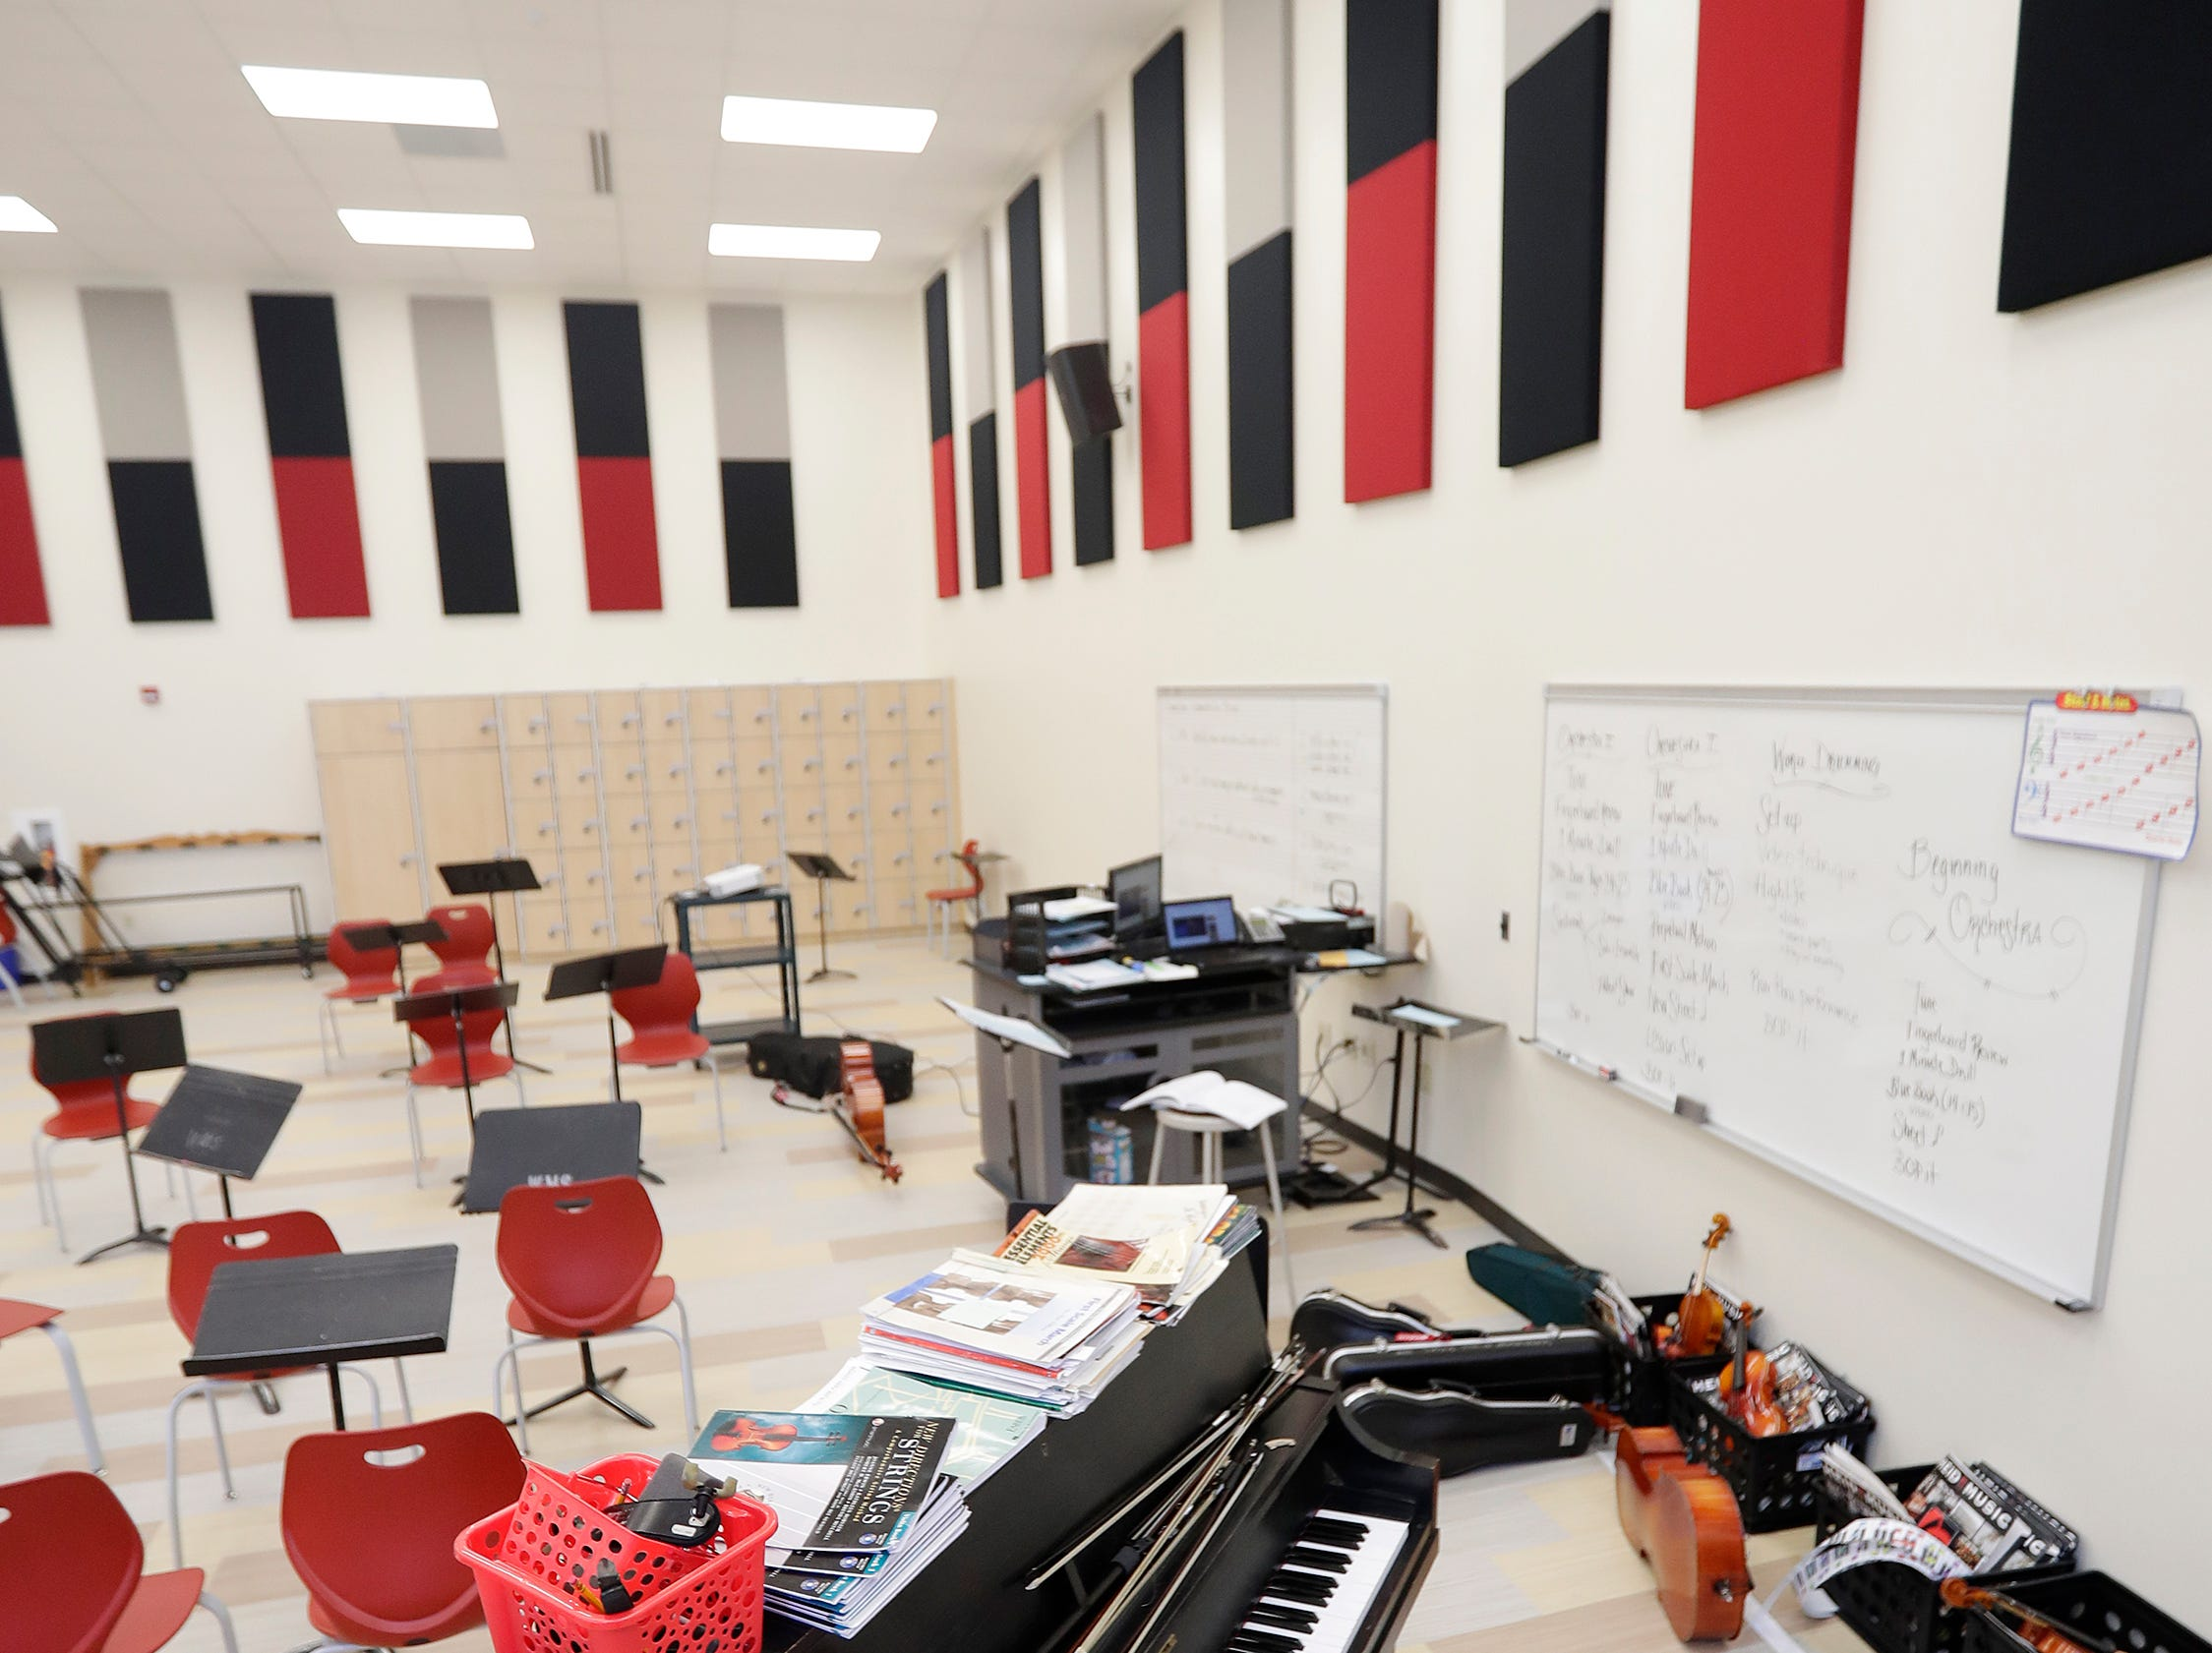 The new band room at Washington Middle School is shown on Wednesday, February 13, 2019 in Green Bay, Wis.